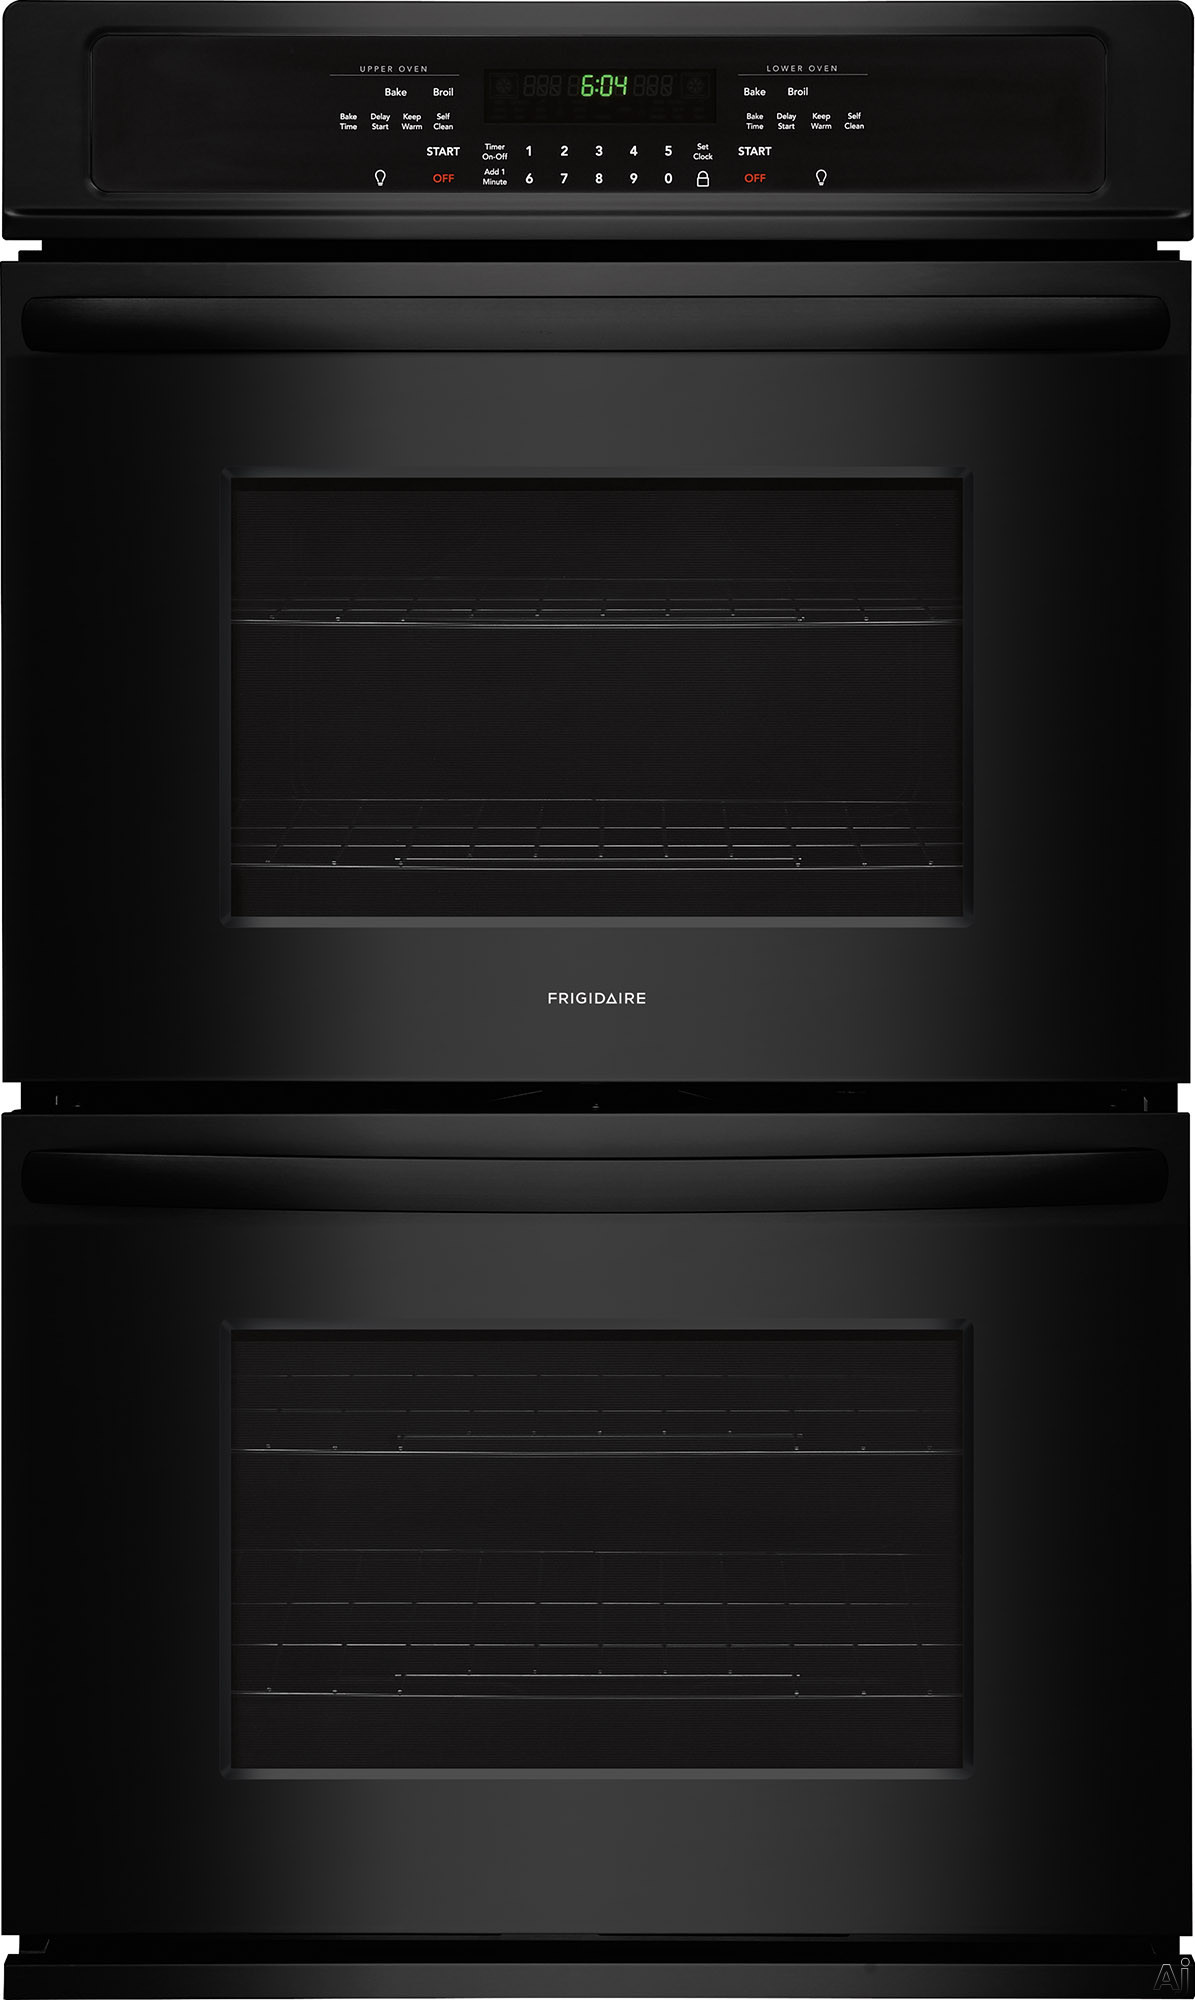 Frigidaire FFET2726TB 27 Inch Electric Double Wall Oven with Vari-Broil™ Temperature Control, Ready-Select® Controls, Even Baking Technology, Self-Cleaning, Delay Bake, Star-K® Certified S